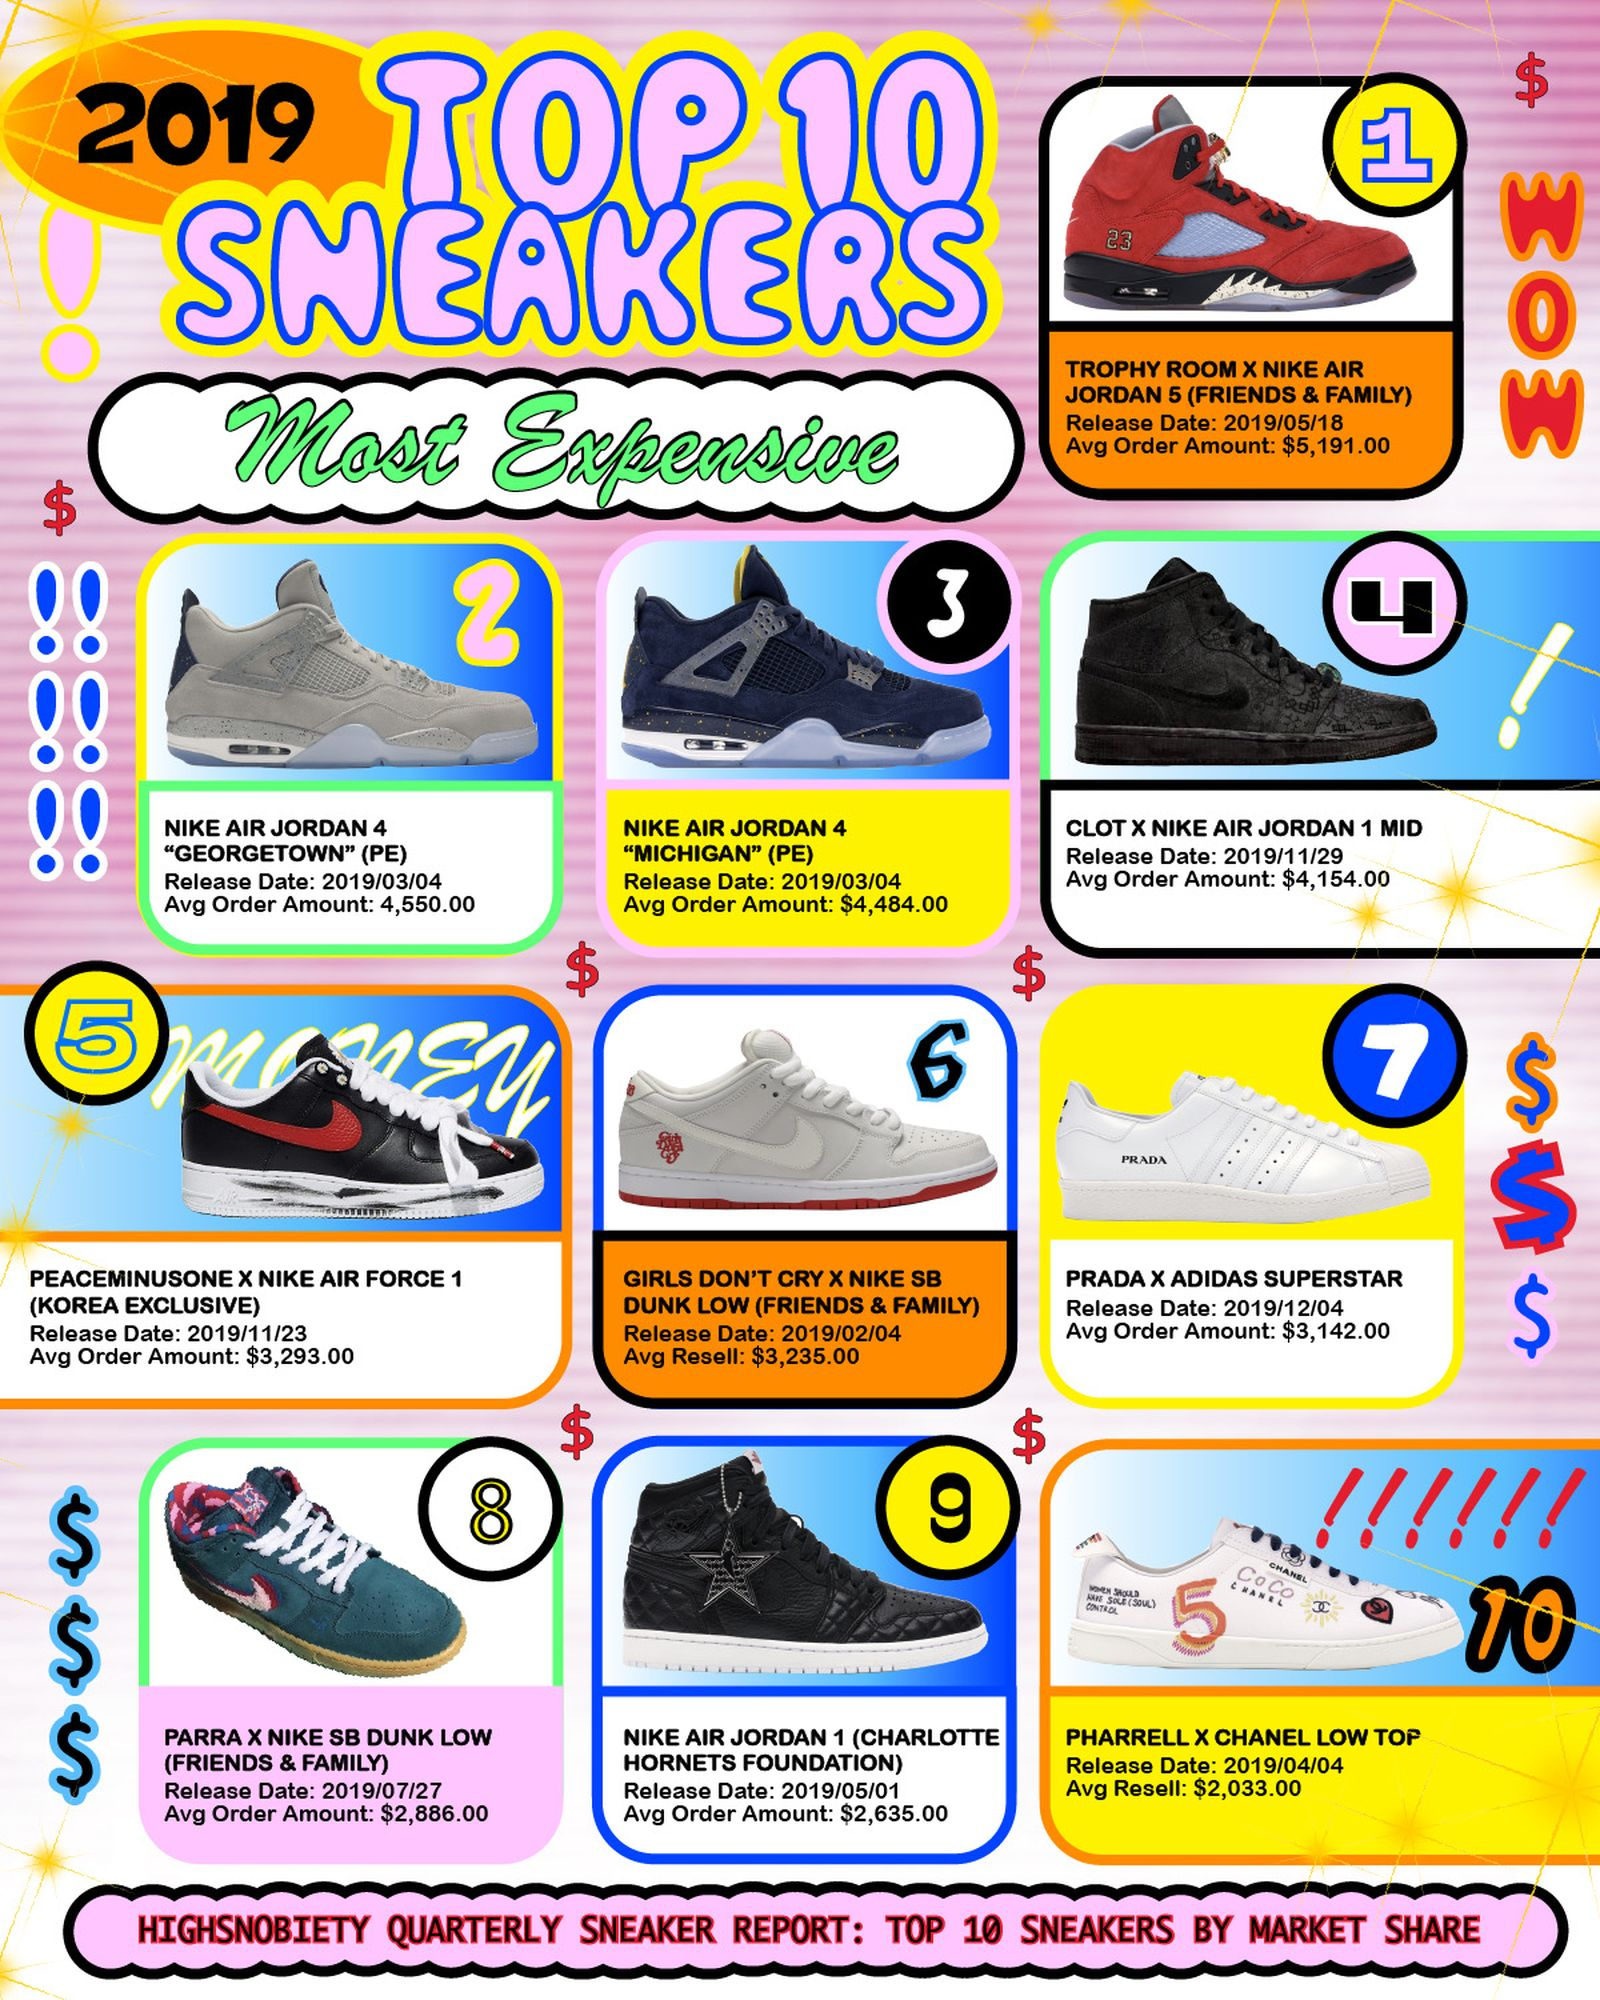 most-expensive-sneakers-2019-01